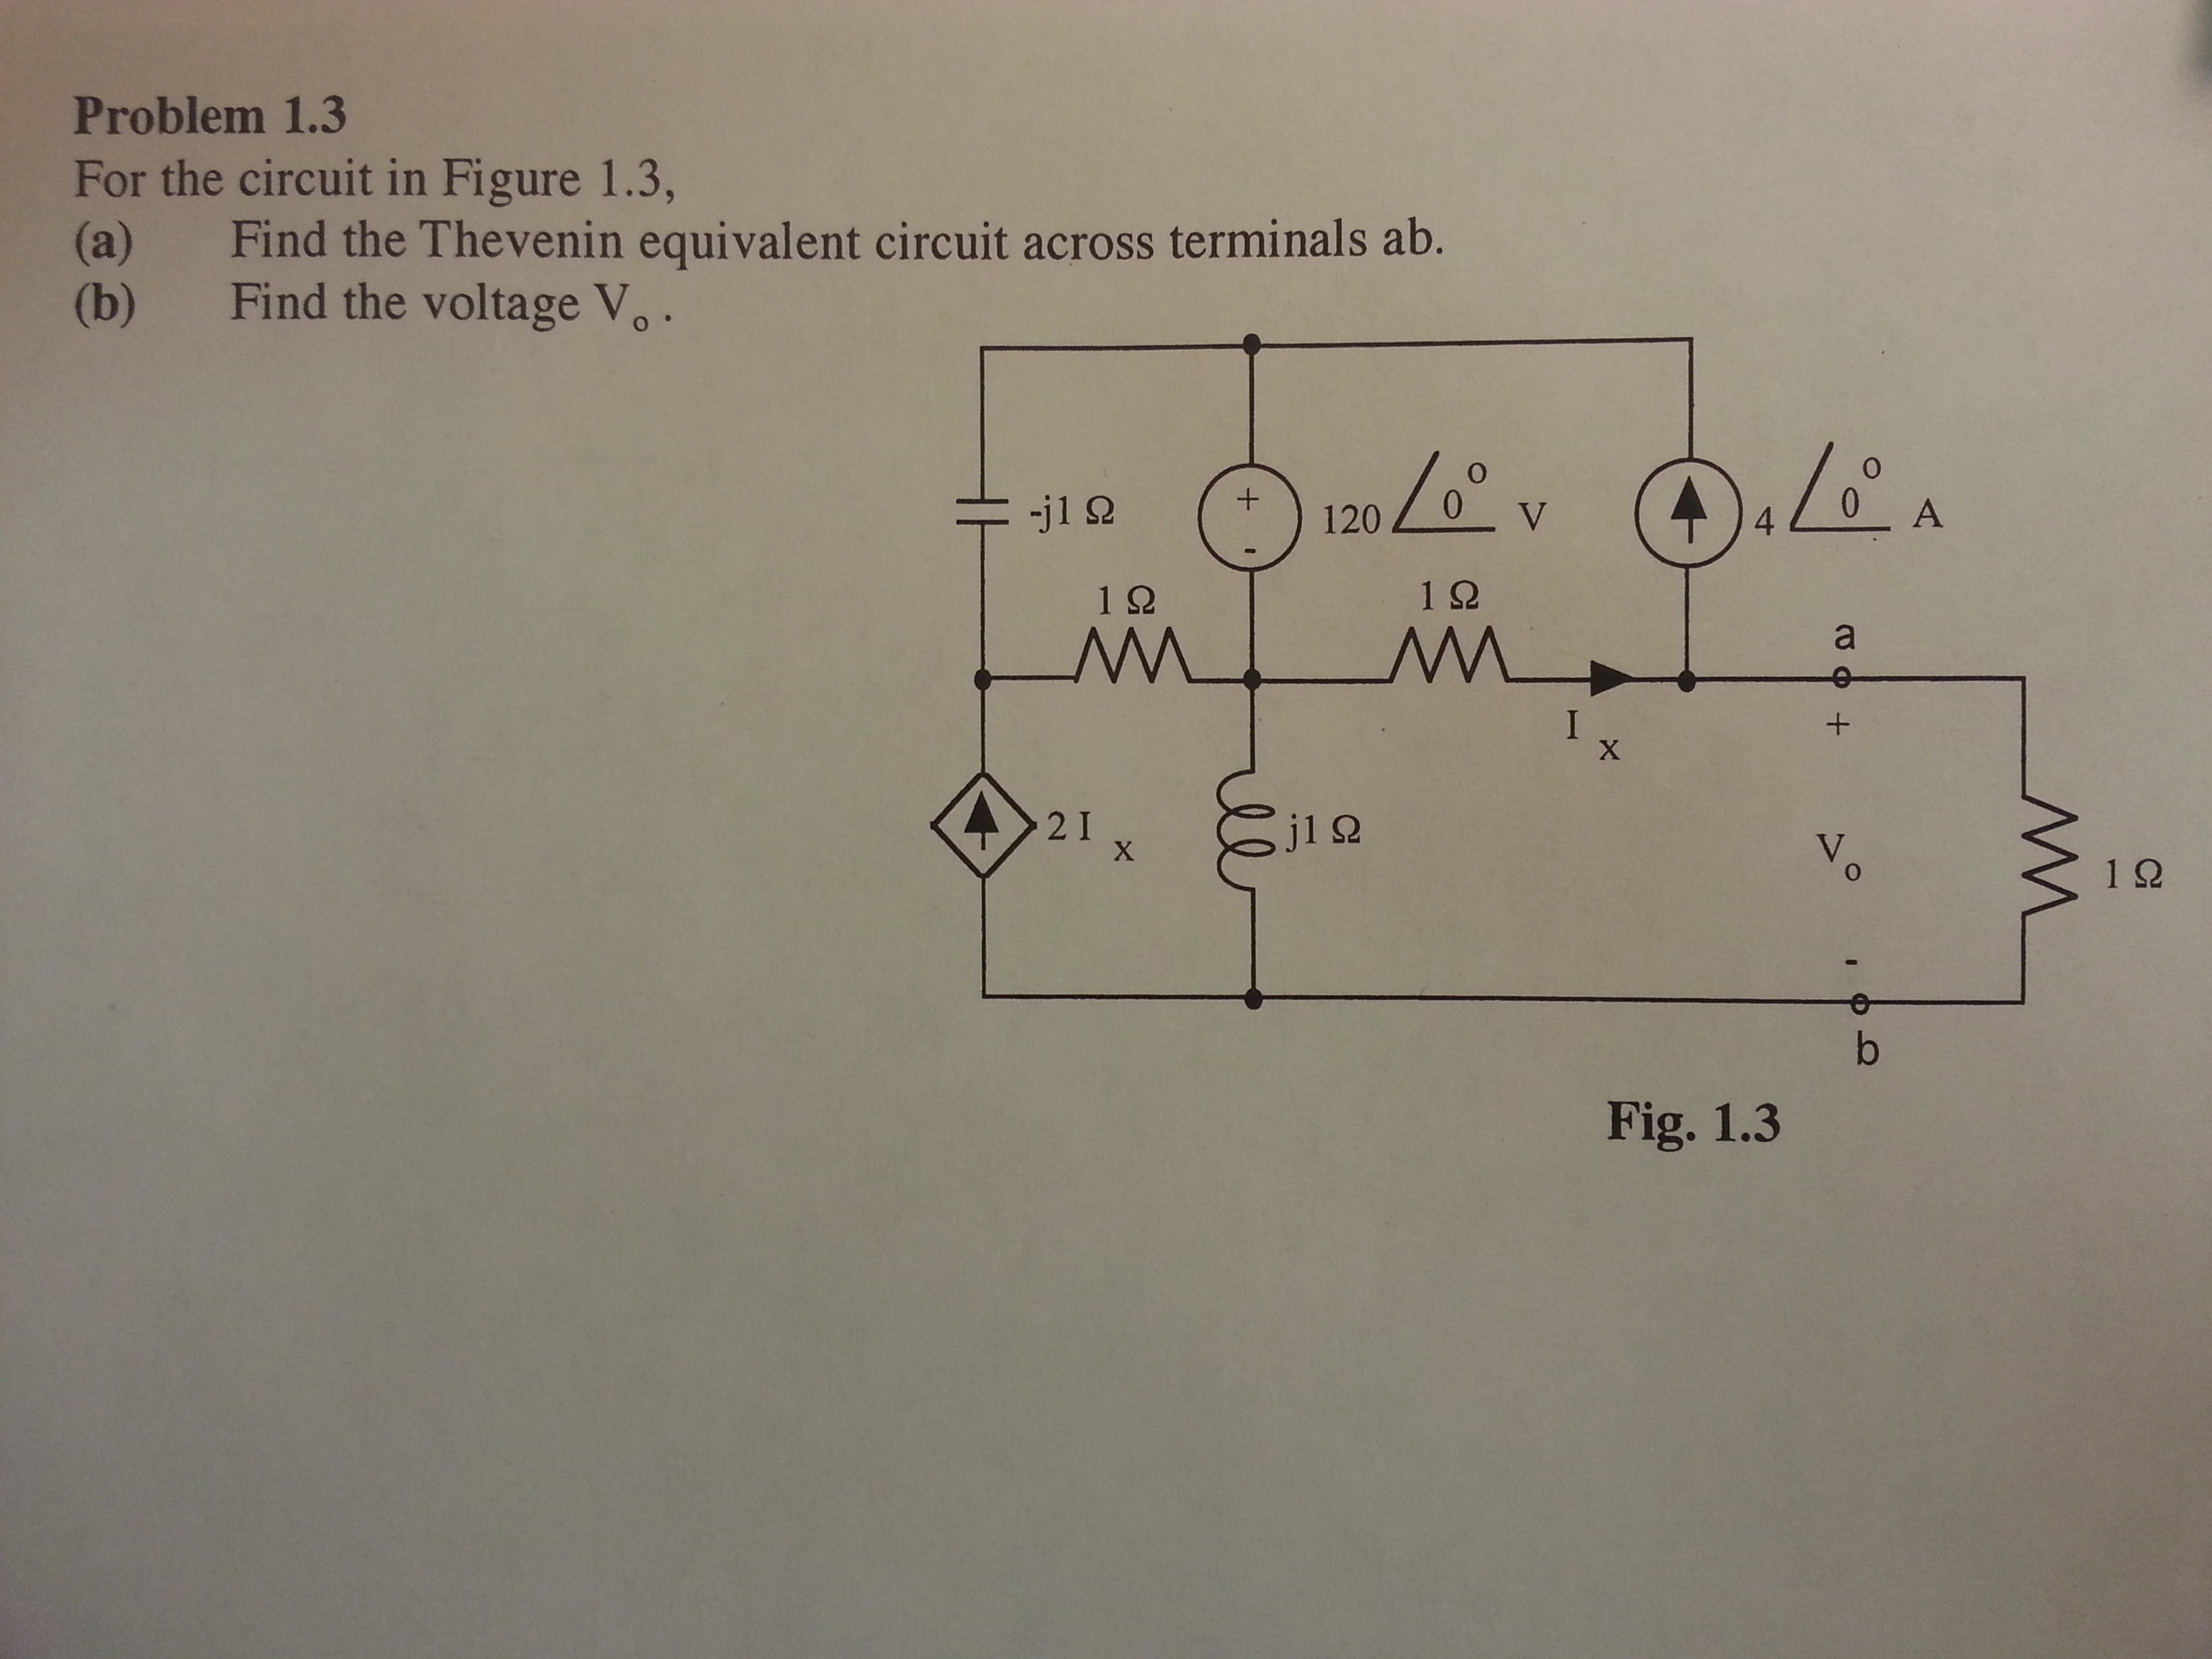 For the circuit in Figure 1.3, Find the Thevenin